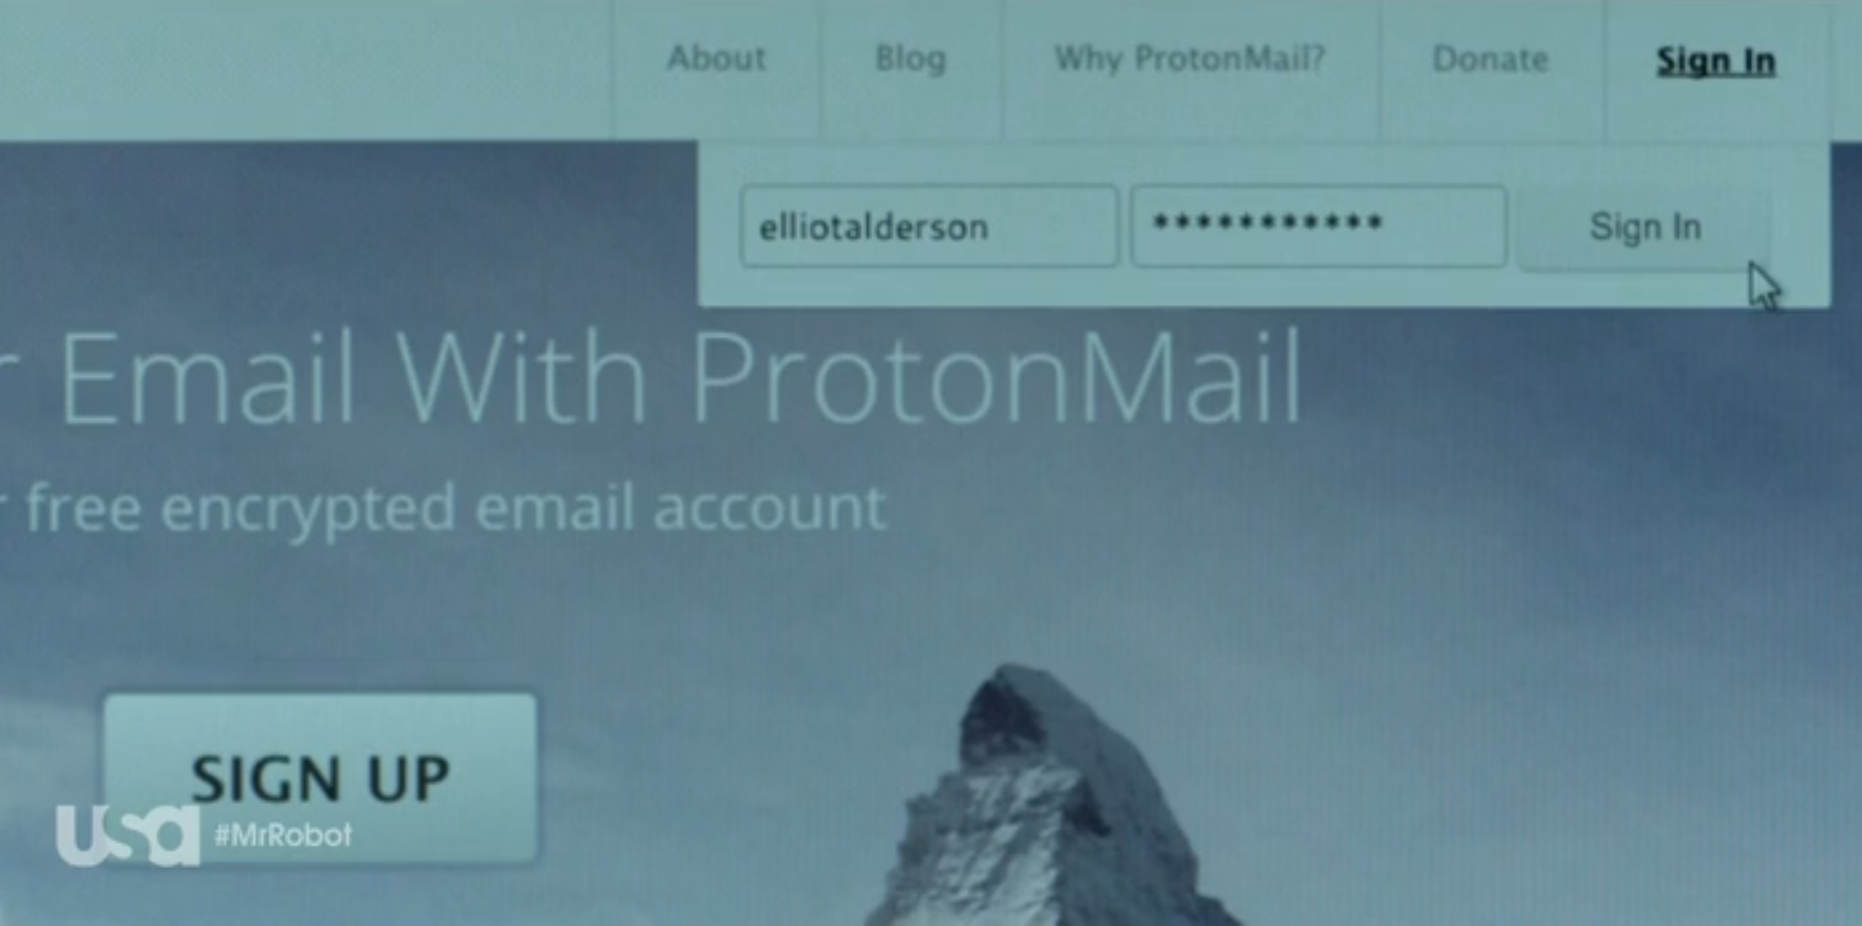 ProtonMail Was Probably Not Hacked - Gestalt IT